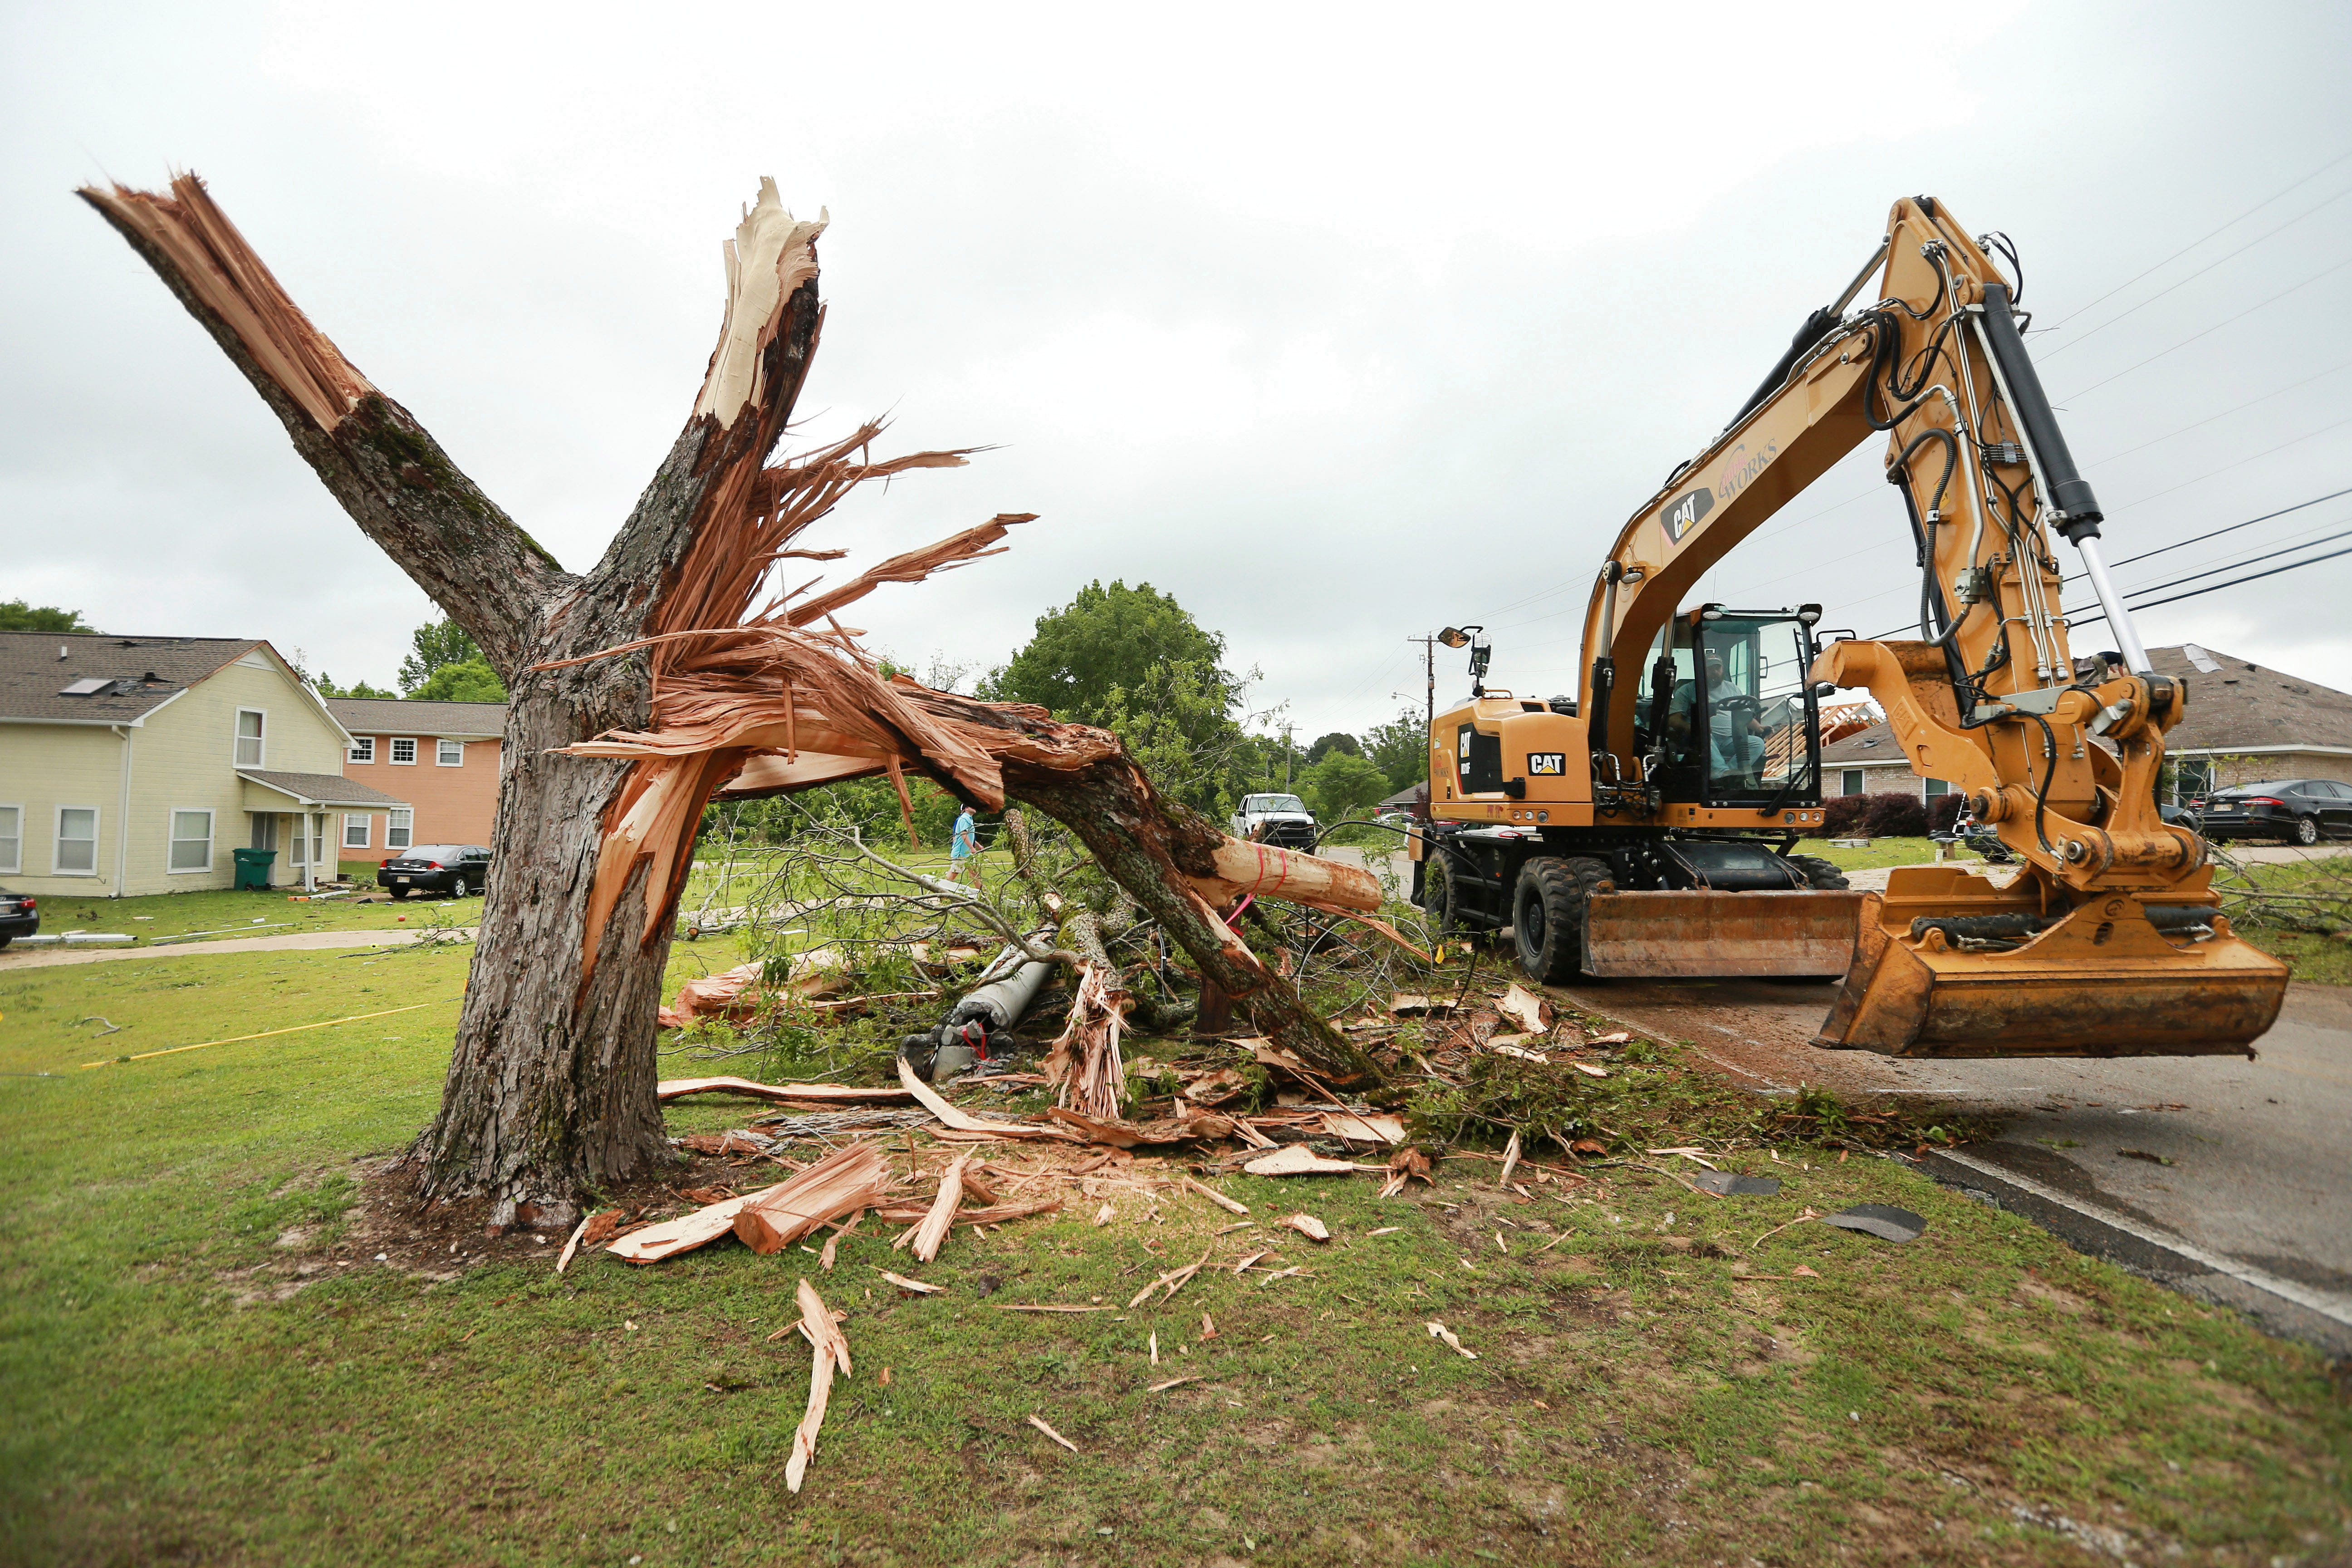 Hail, wind and tornadoes: South at risk for severe weather again after tornadoes cause heavy damage, 2 deaths